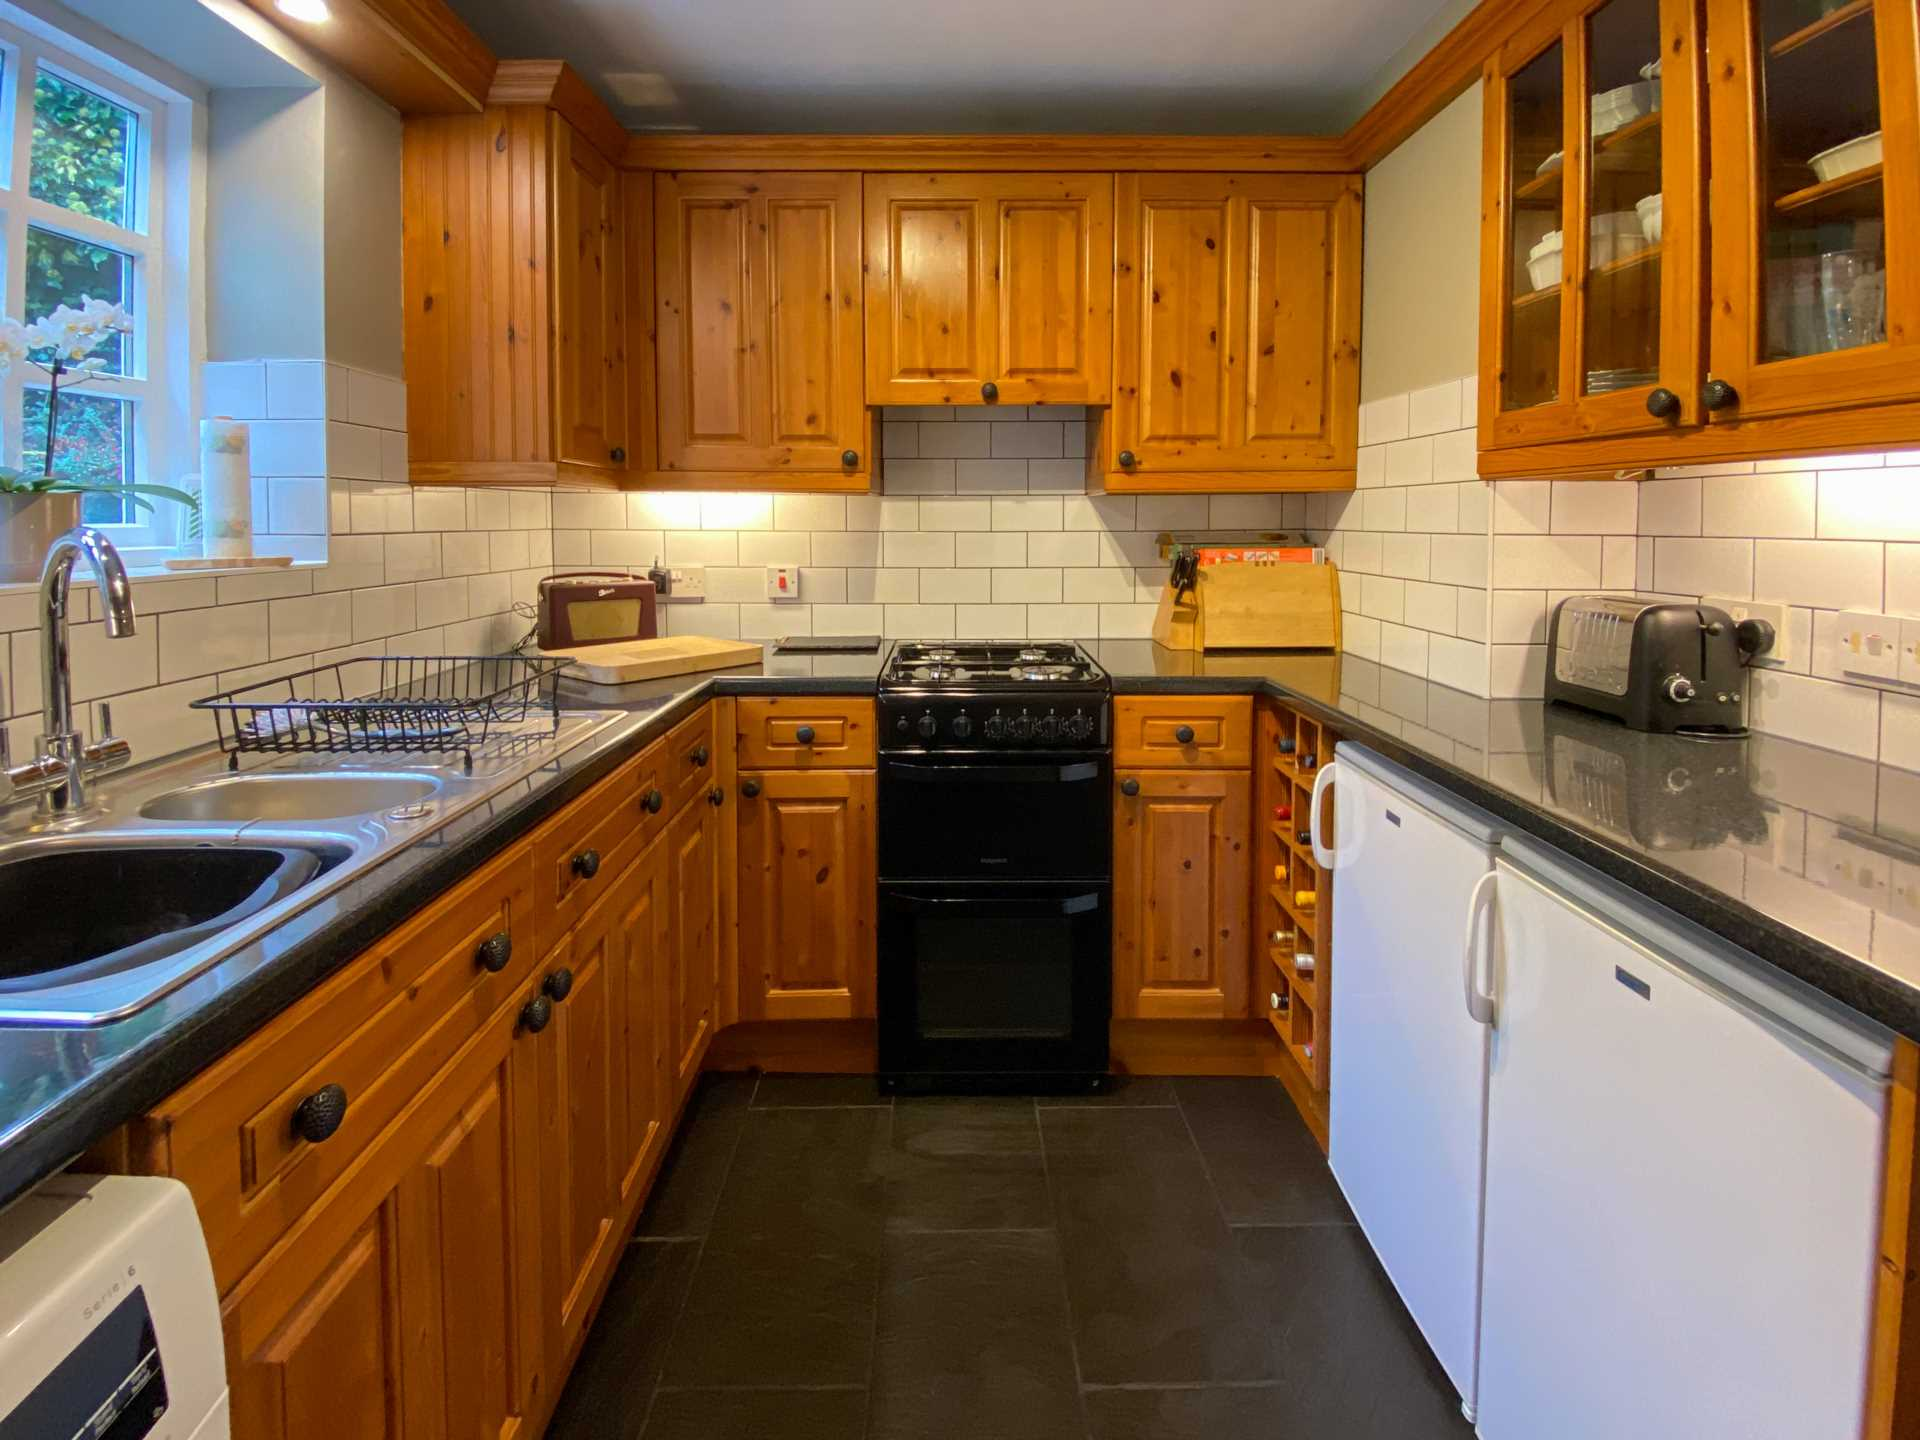 New Mill Terrace, Tring, Image 7